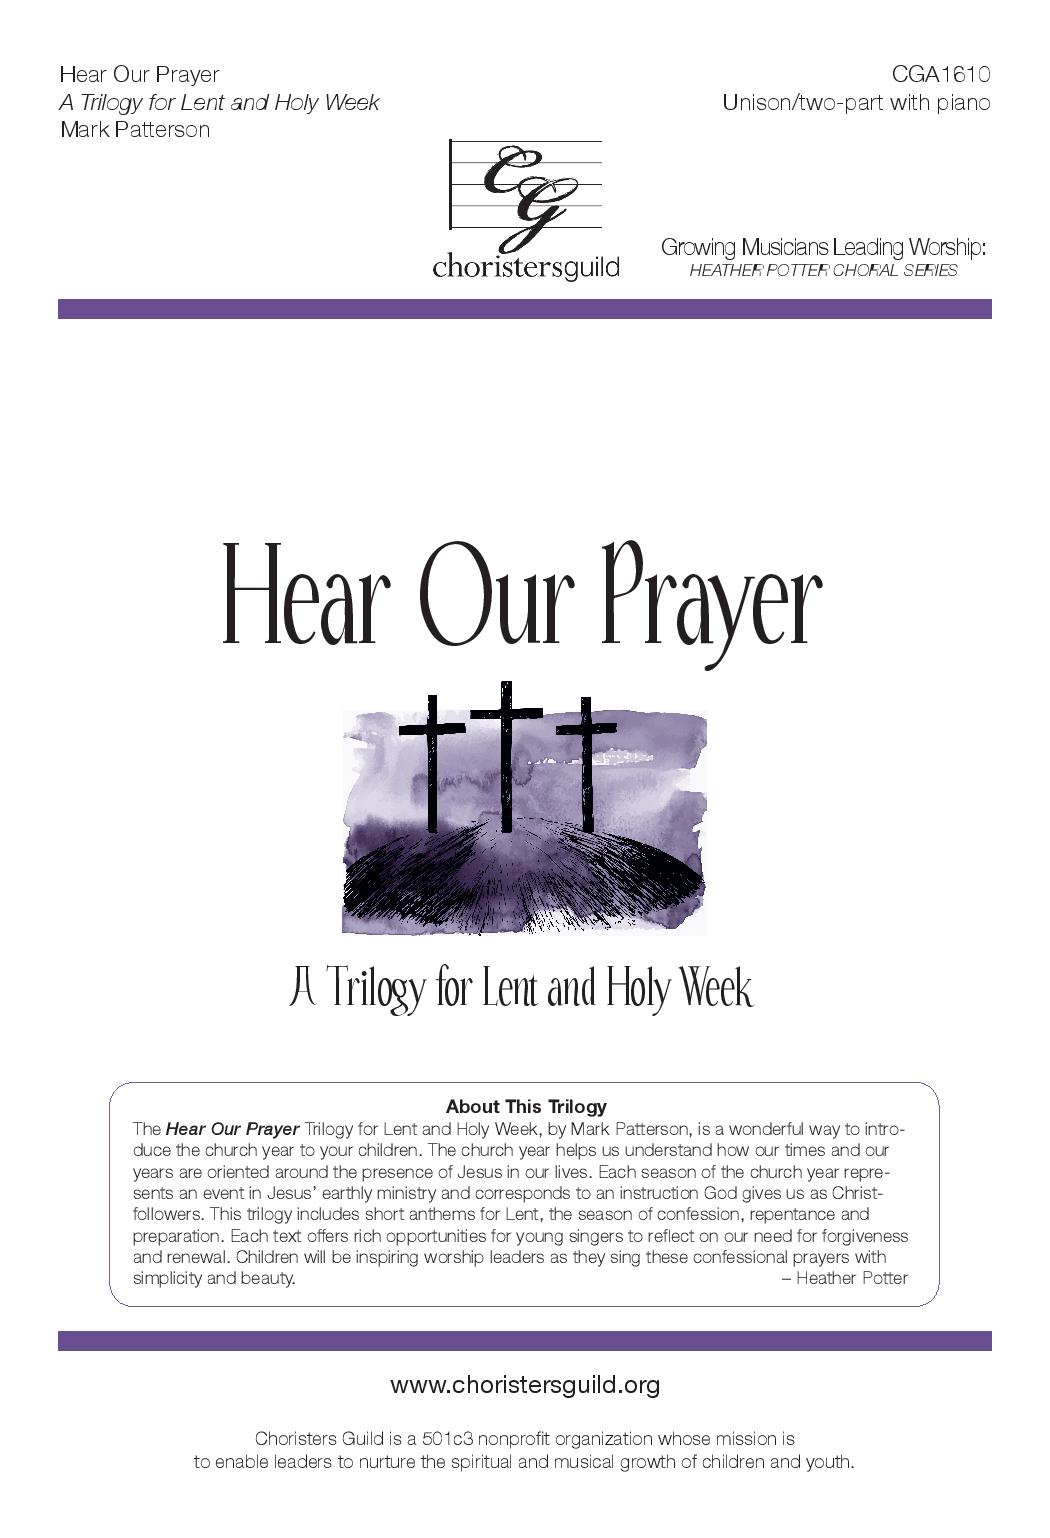 Hear Our Prayer: A Trilogy (Digital Download Accompaniment Track)